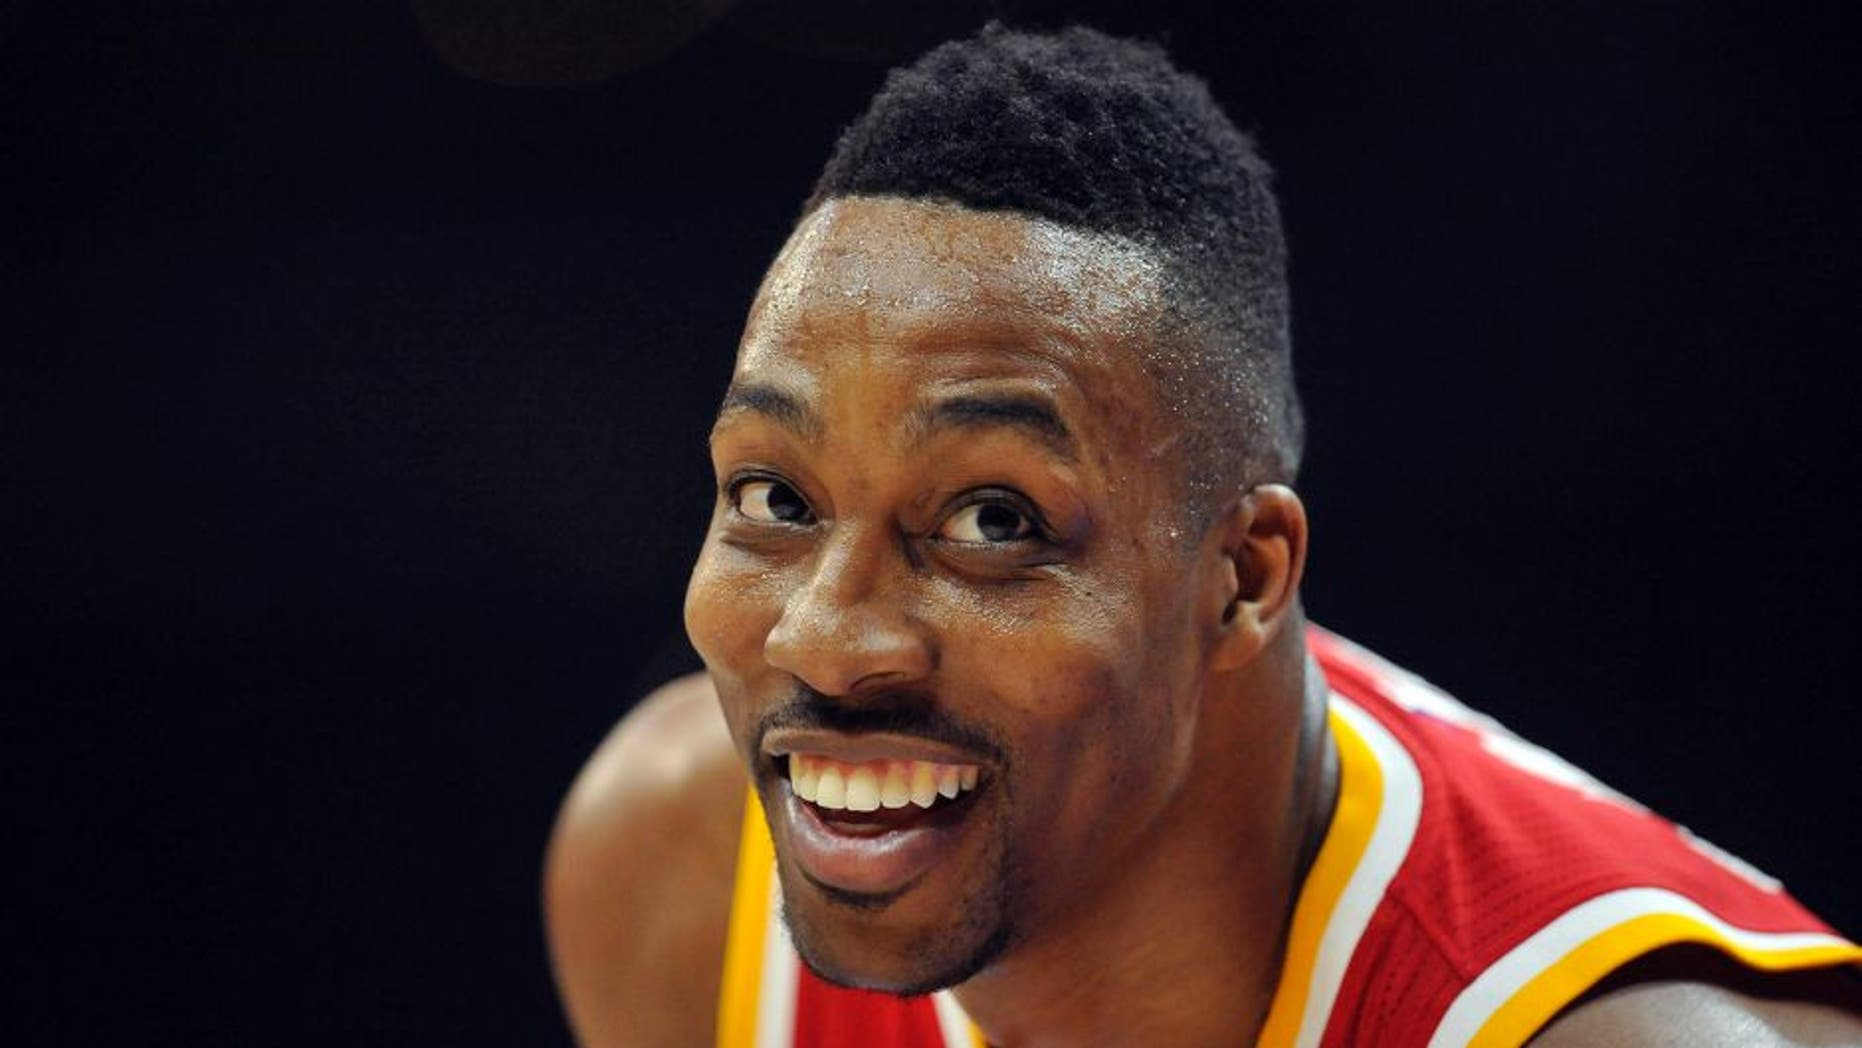 May 8, 2015; Los Angeles, CA, USA; Houston Rockets center Dwight Howard (12) against the Los Angeles Clippers during the second half in game three of the second round of the NBA Playoffs. at Staples Center. Mandatory Credit: Gary A. Vasquez-USA TODAY Sports